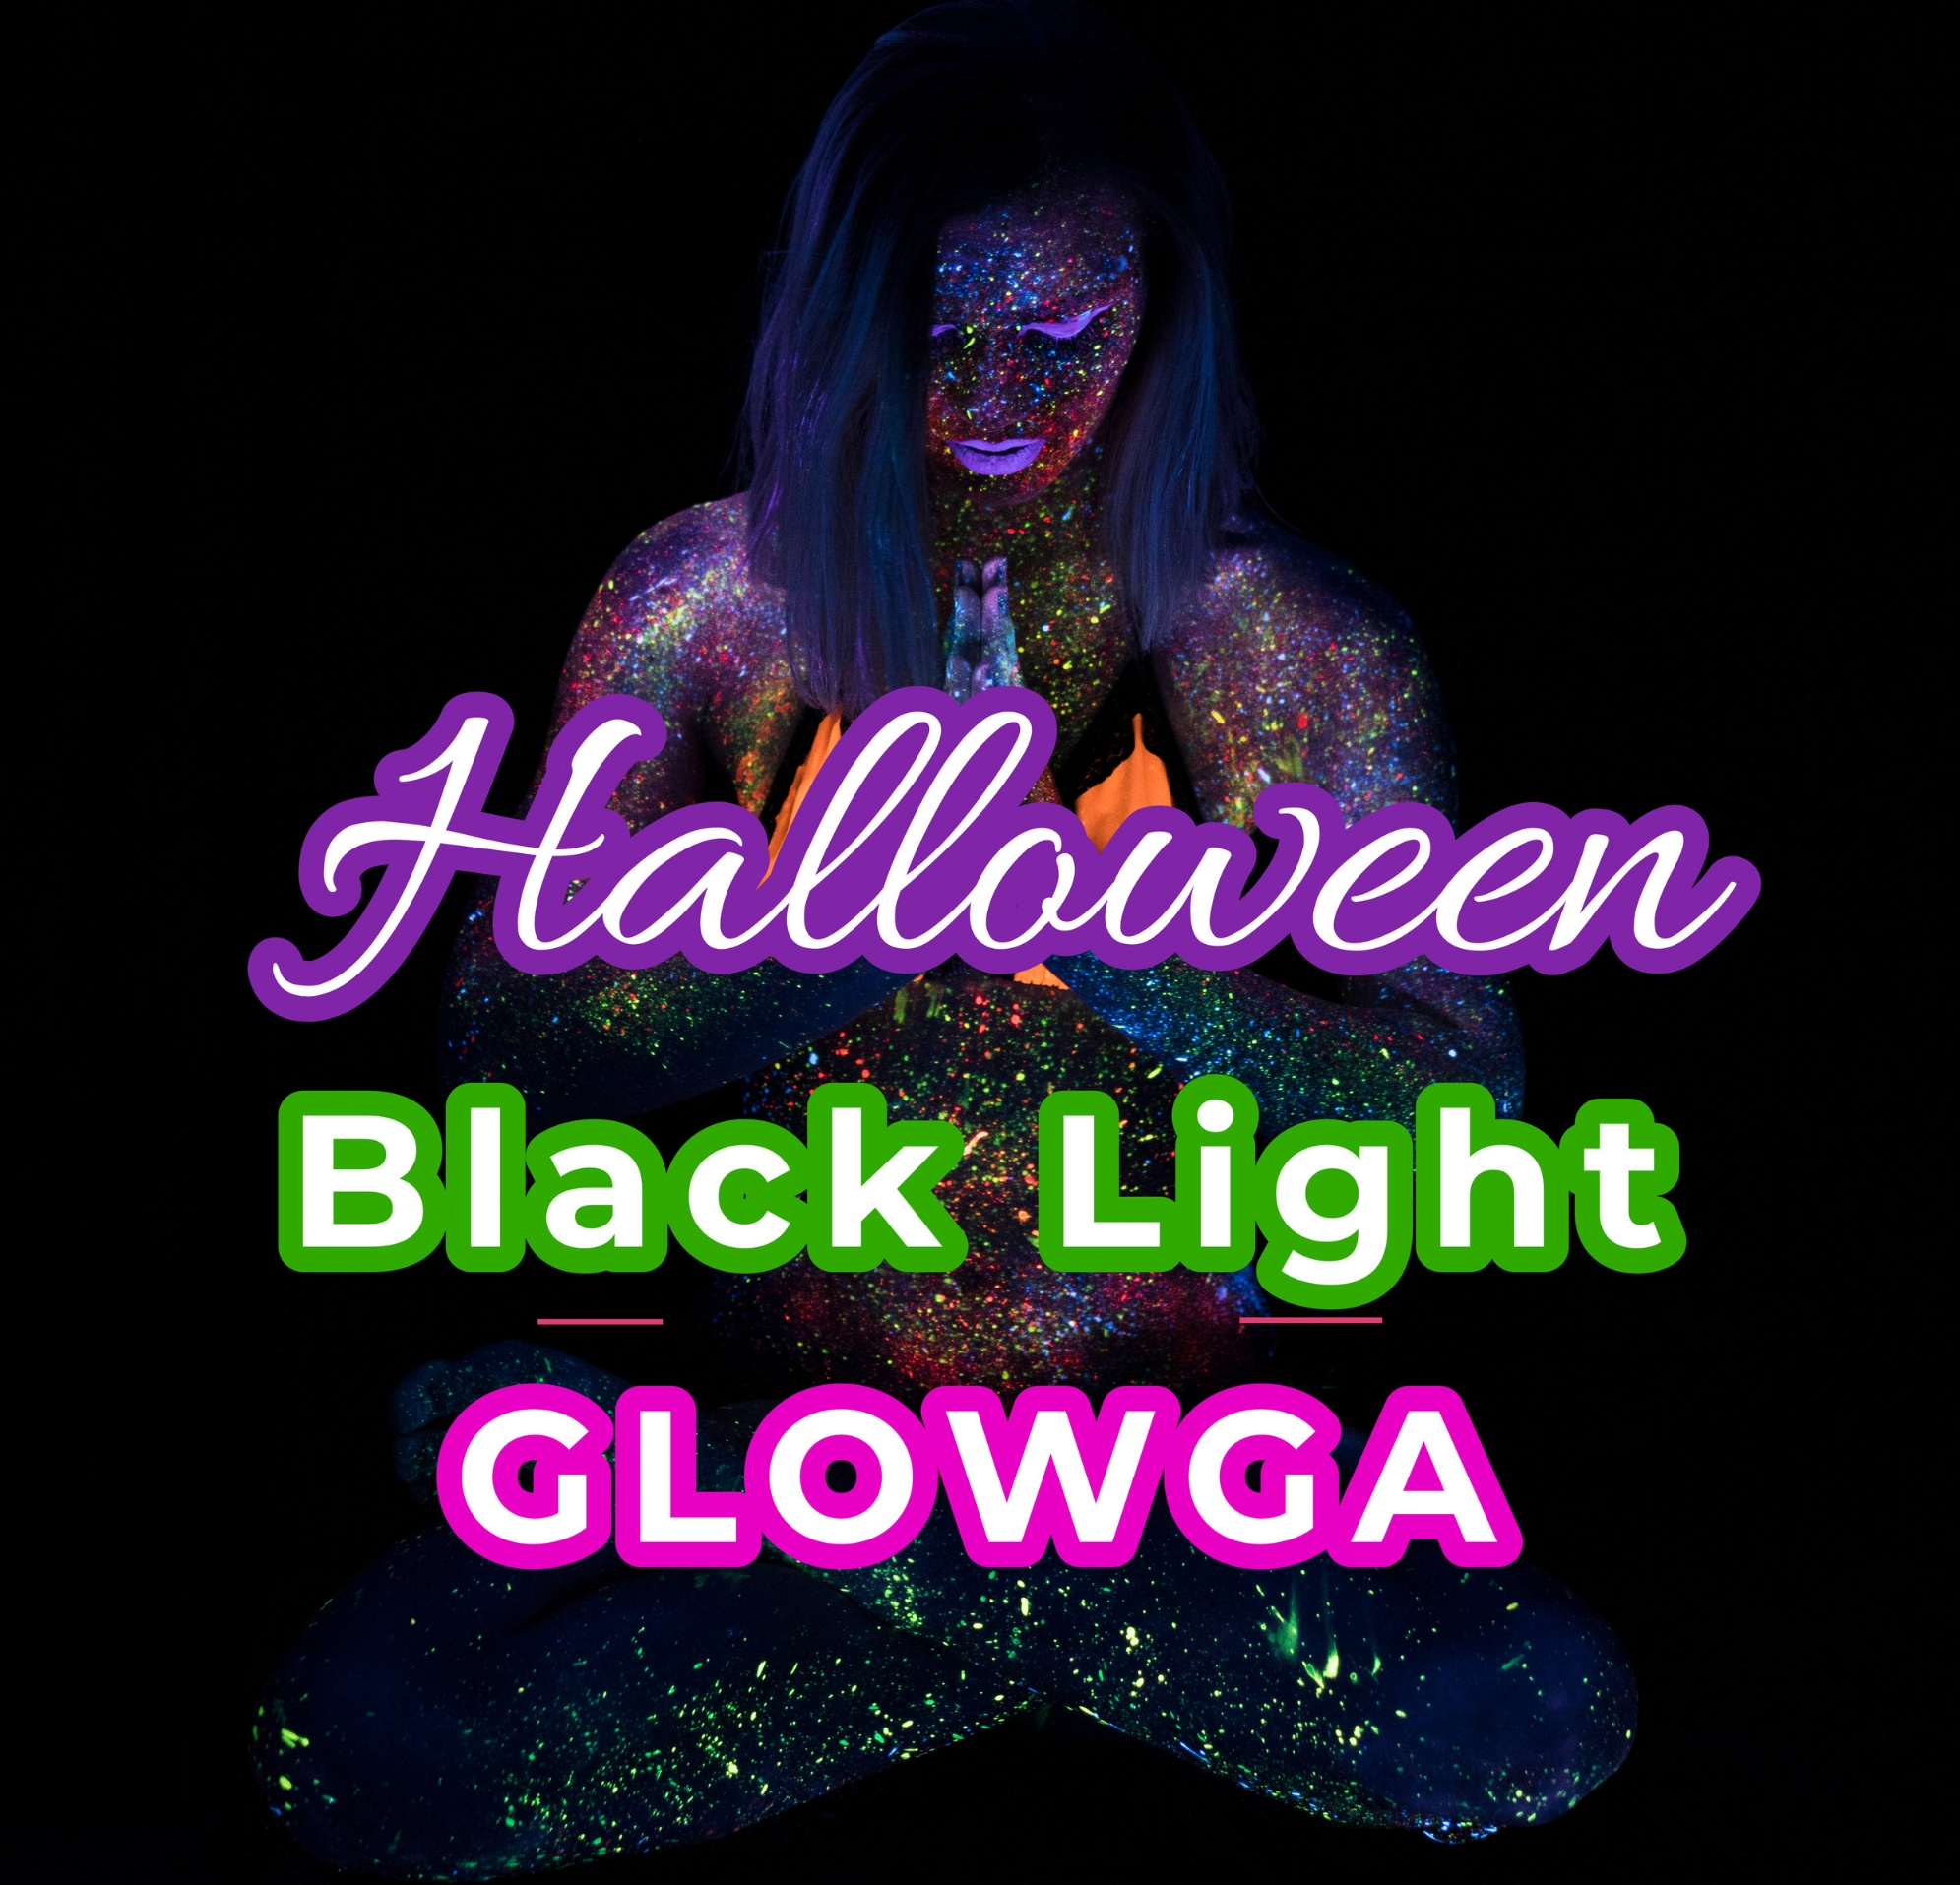 Halloween Black-Light Glowga - - wear white so the black lights make you glow!- body paint included-Halloween night: Wednesday, October 31st @7-8:30pm